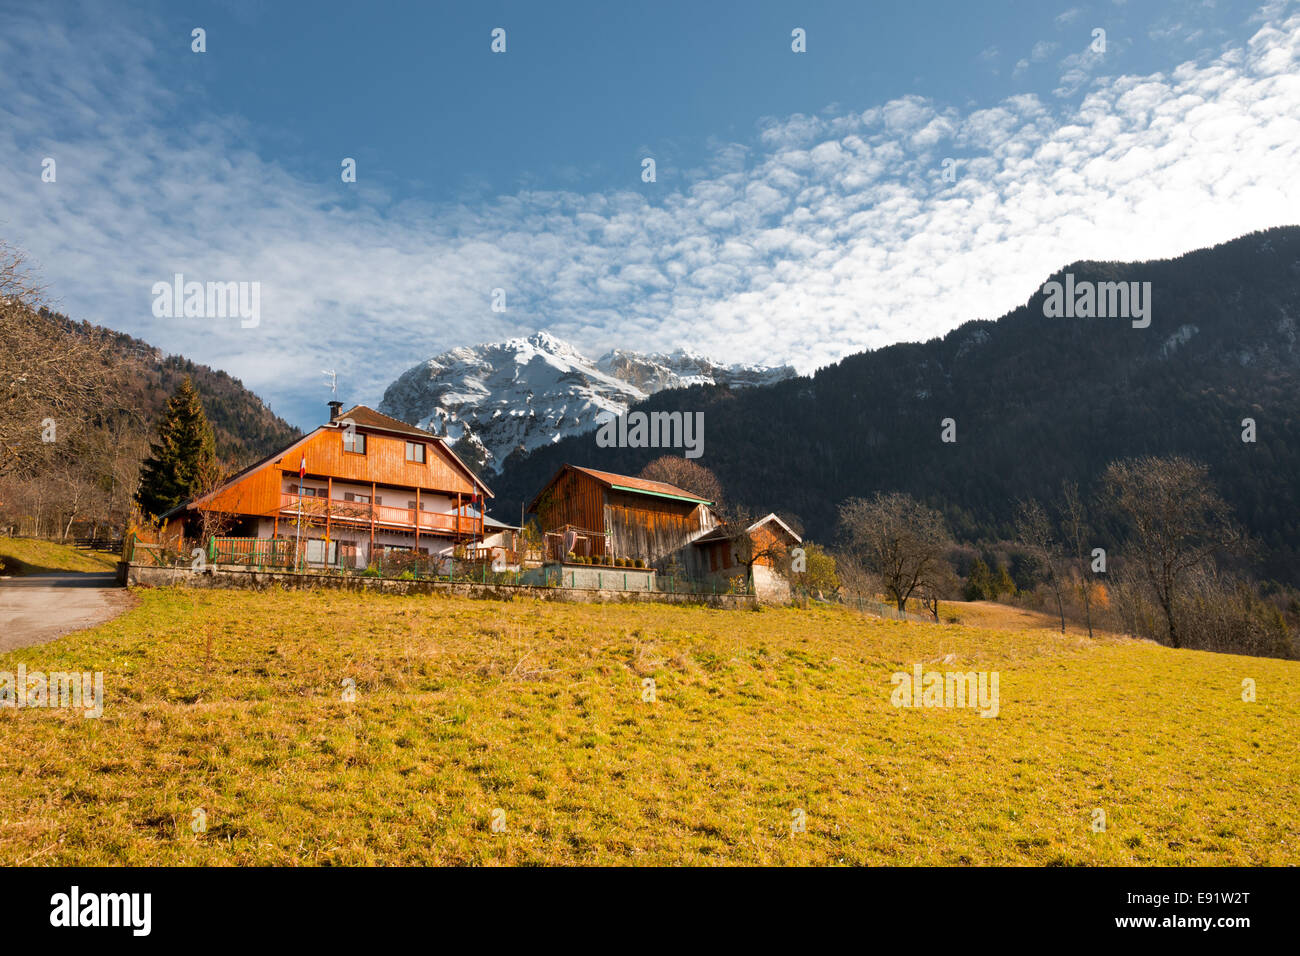 Alps Mountain Chalet H - Stock Image